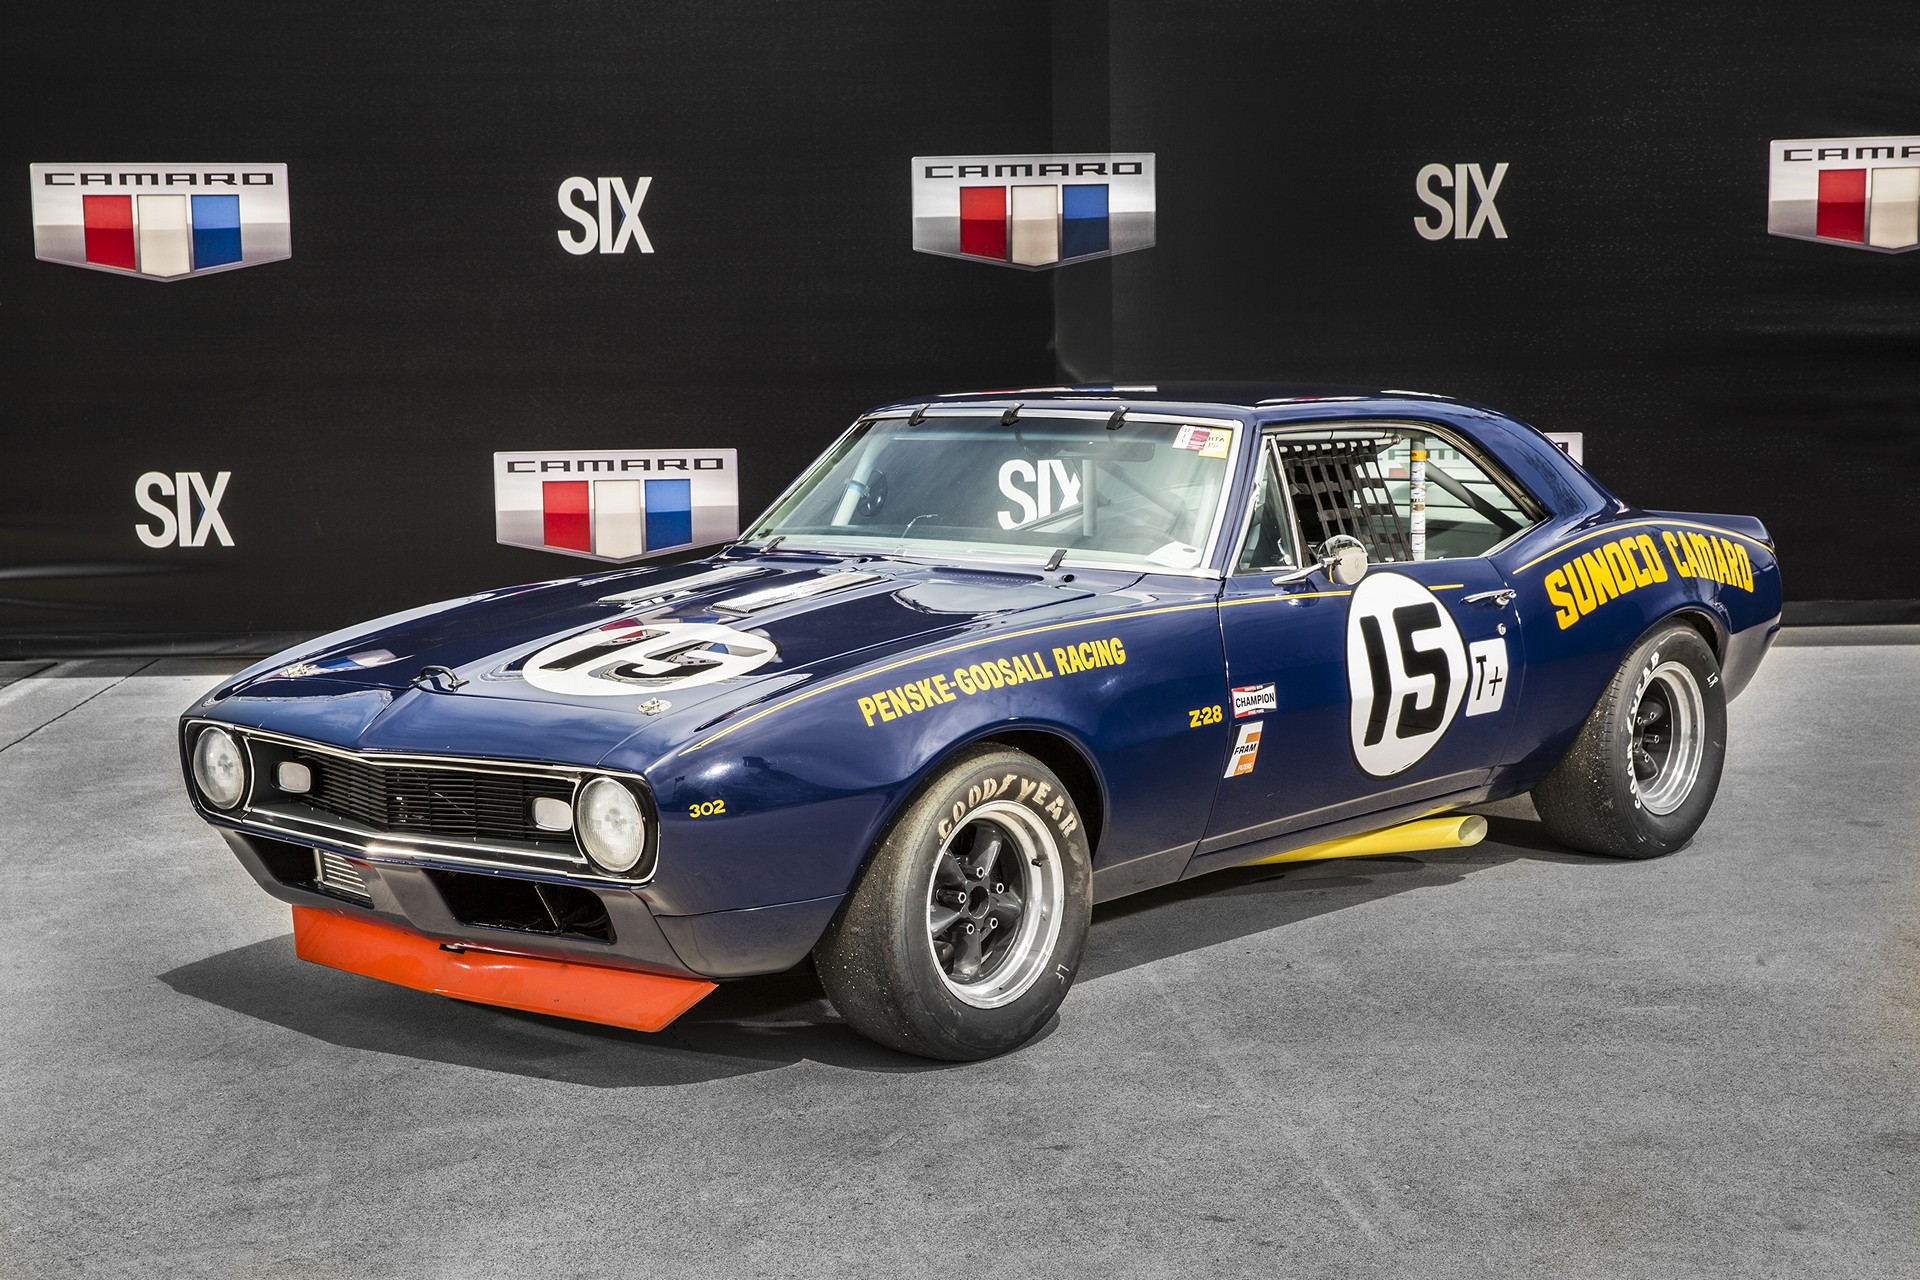 1967 1968 Chevrolet Camaro Z 28 Penske Sunoco Race Car General Motors Carrrs Auto Portal